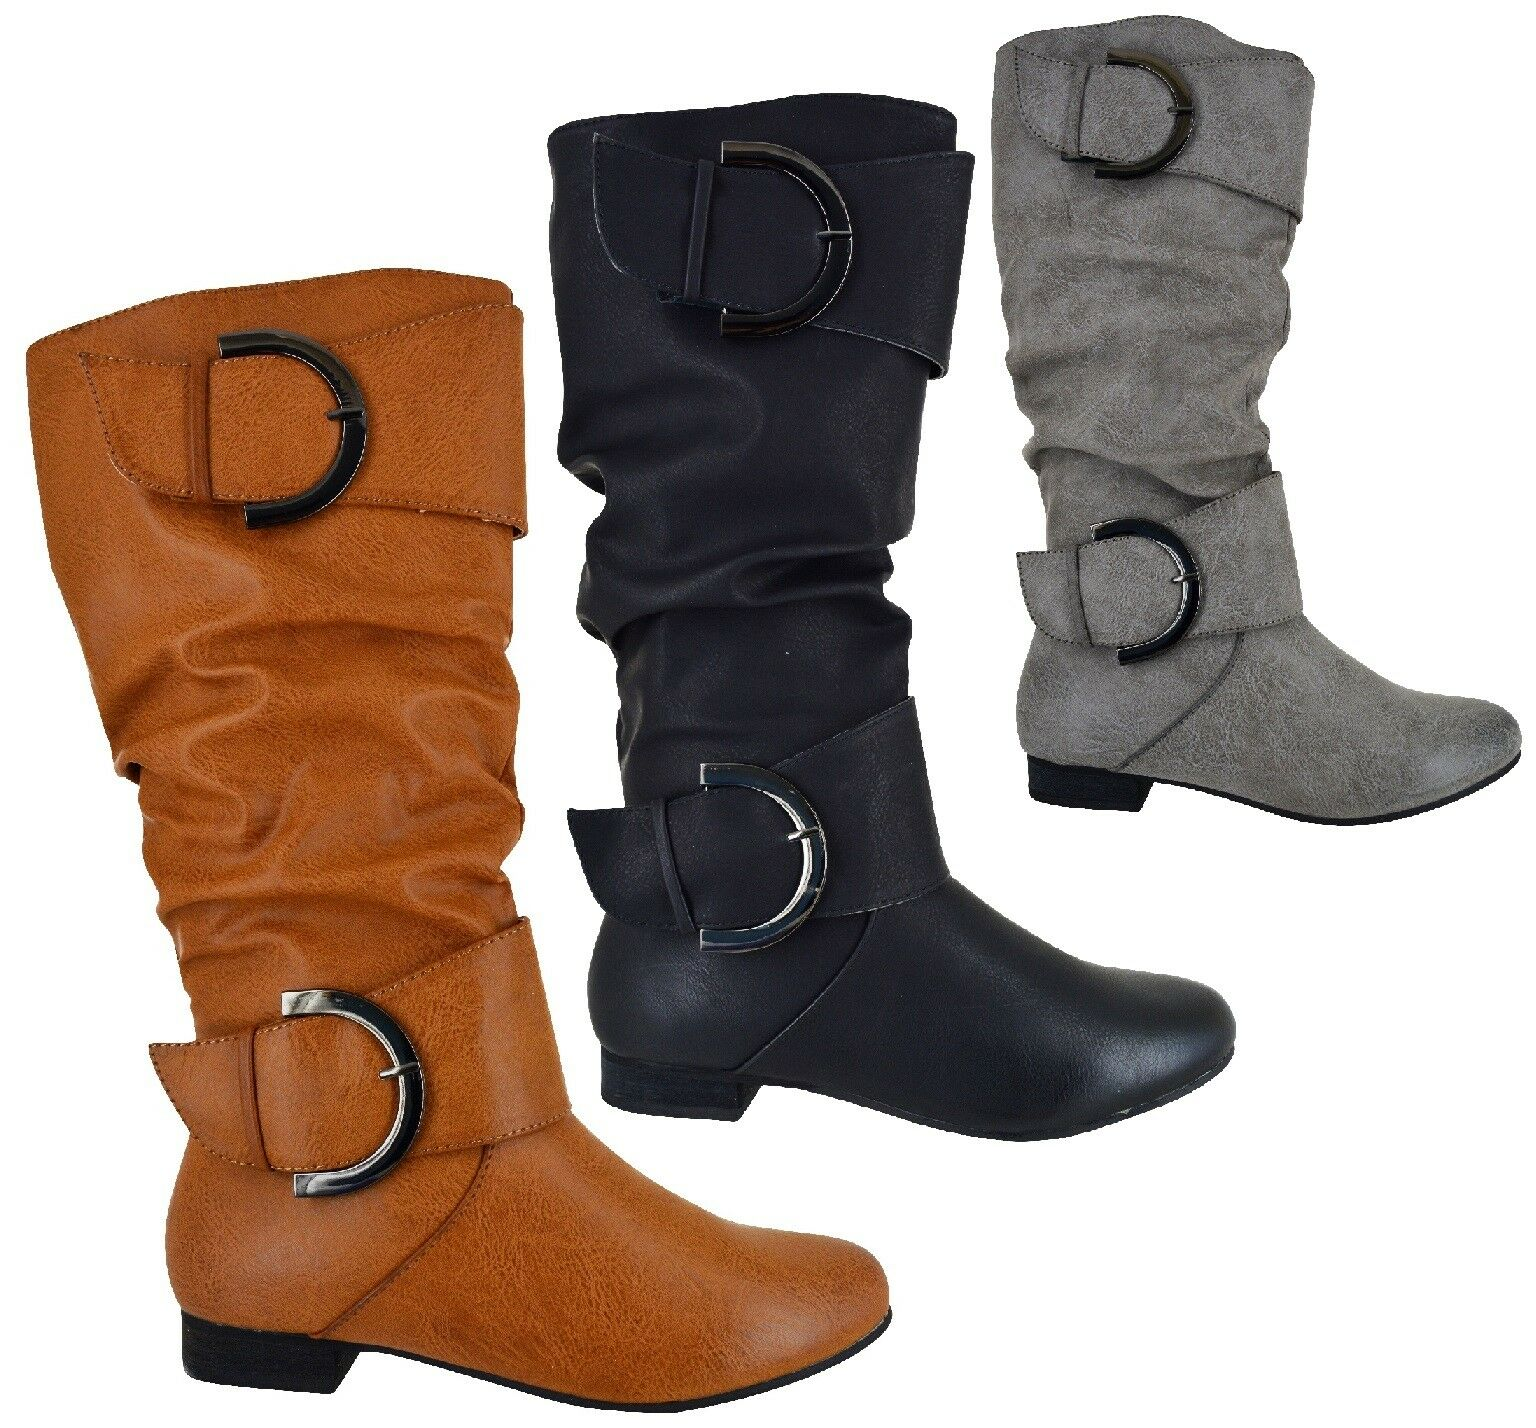 WOMENS FLAT KNEE HIGH WINTER WARM BOOTS LADIES BUCKLE  ZIP COMFY SHOES SIZE 3-8